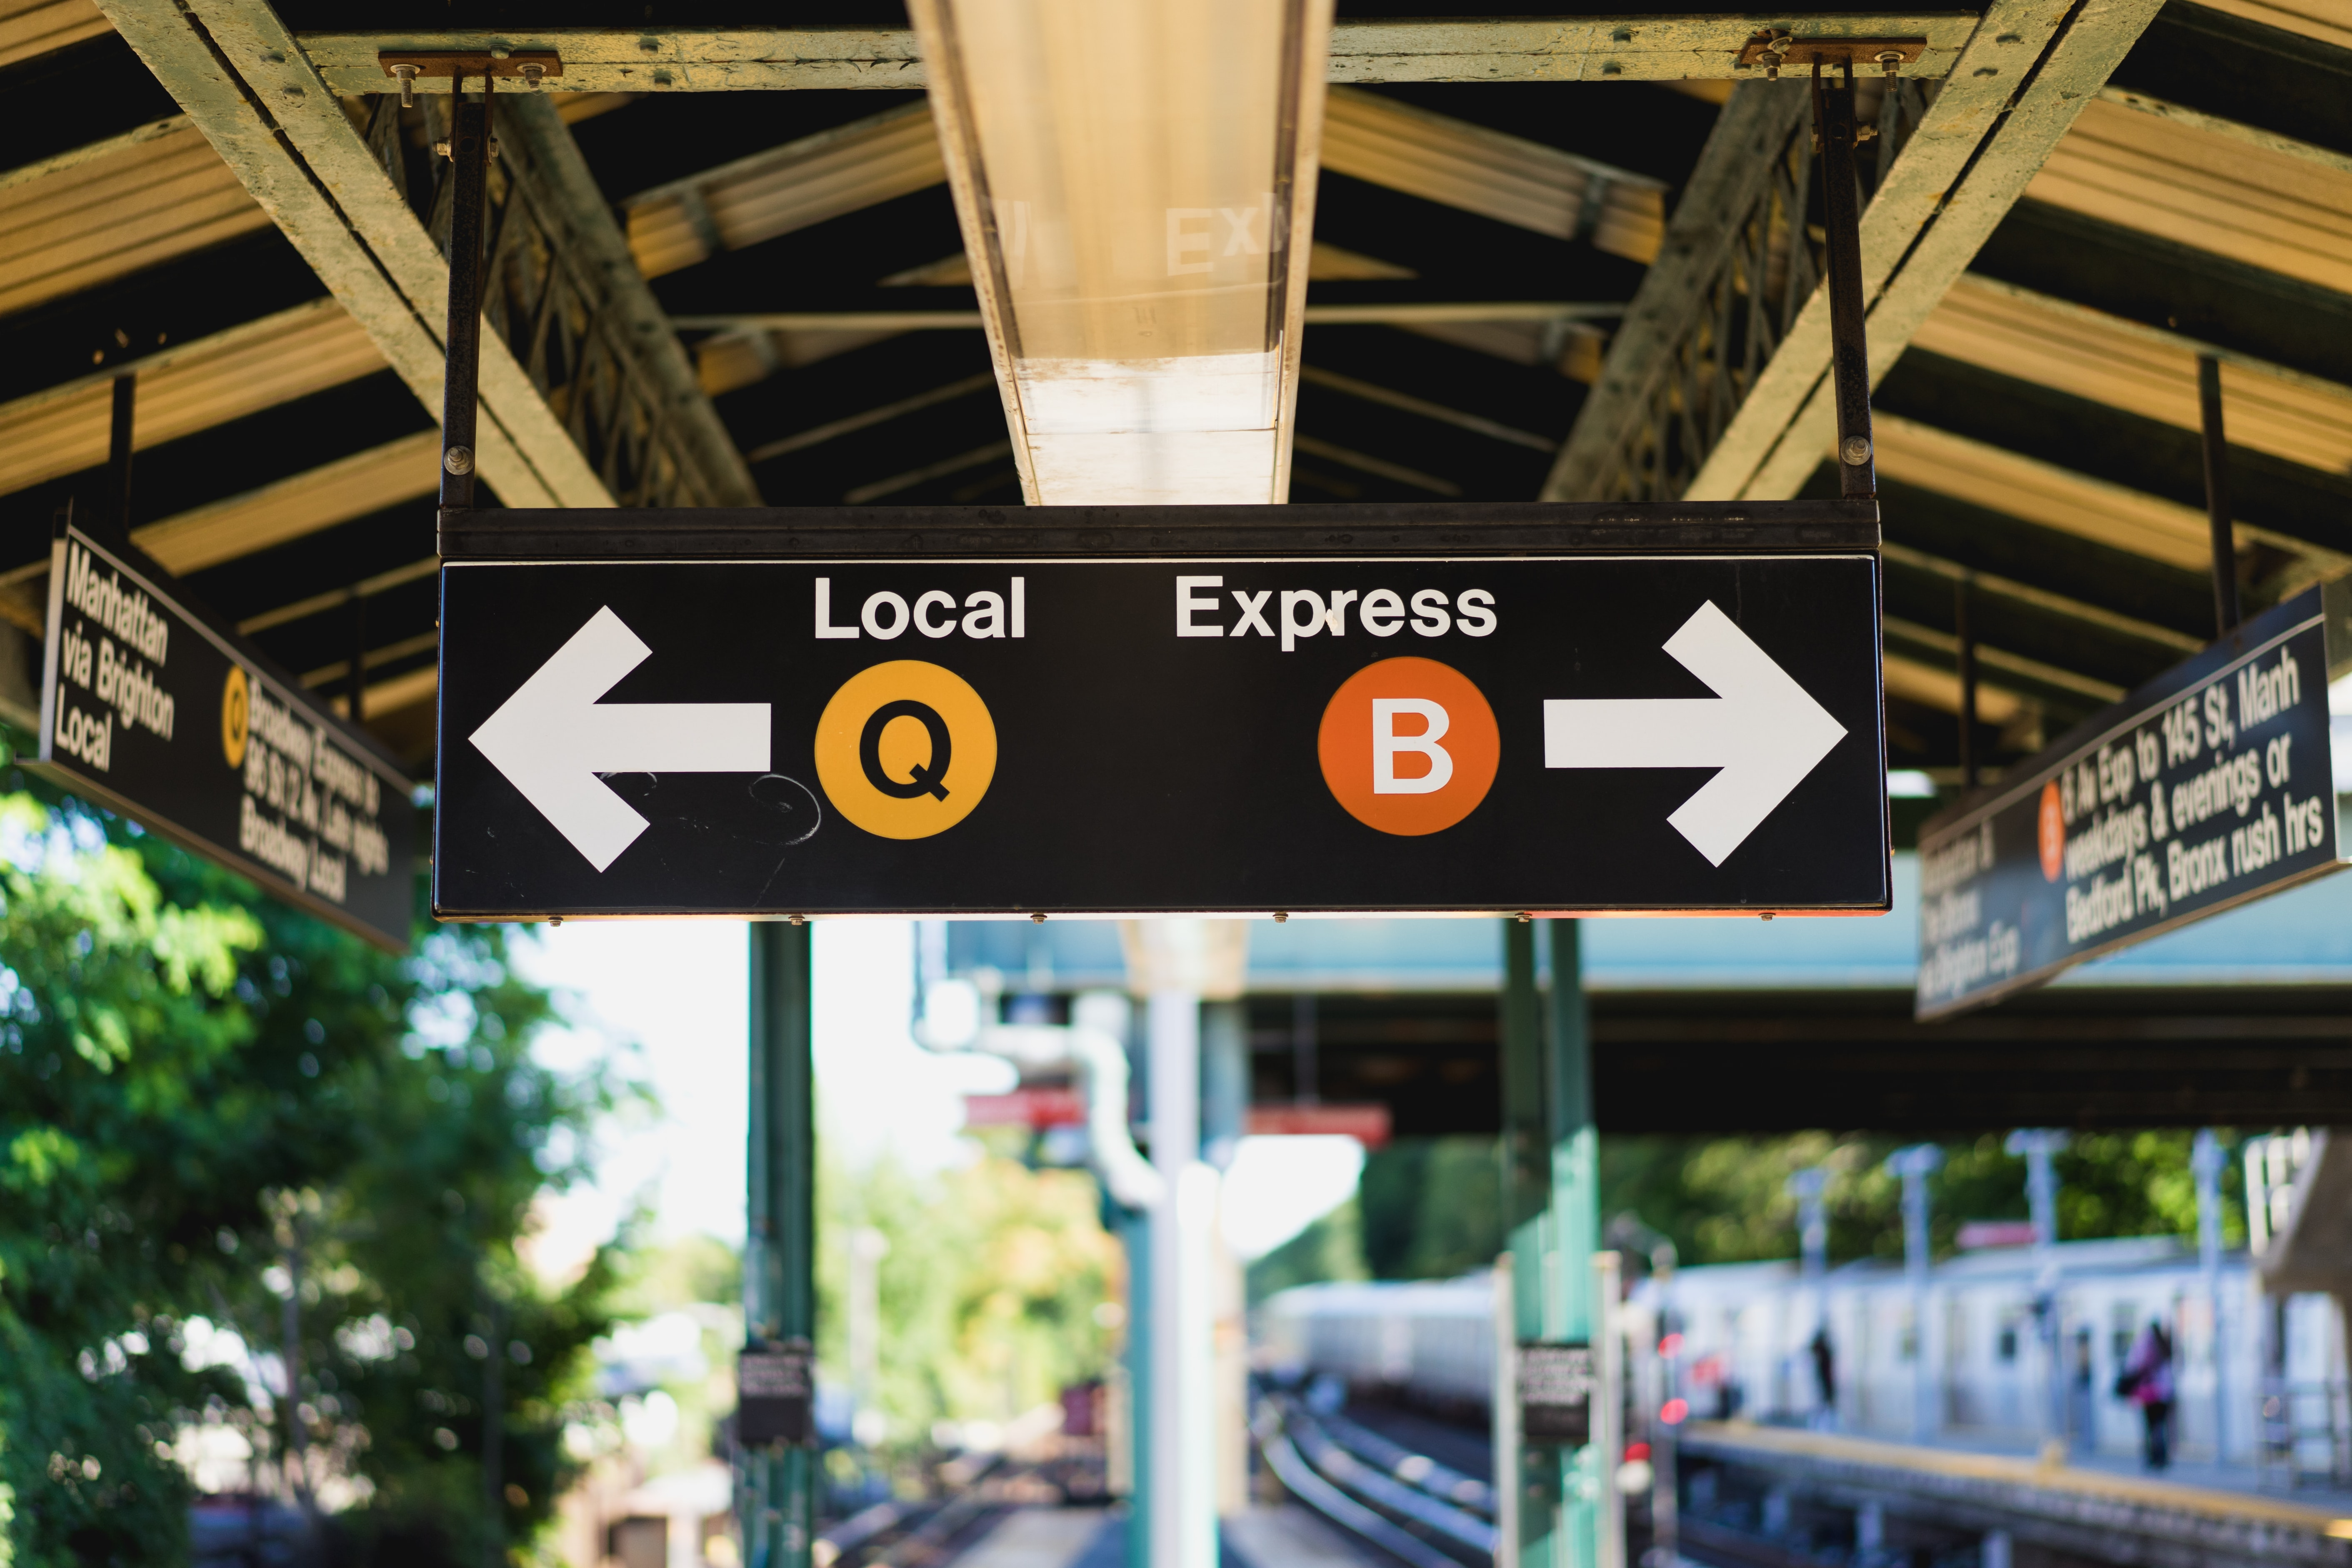 Train station signs tell commuters which way to go